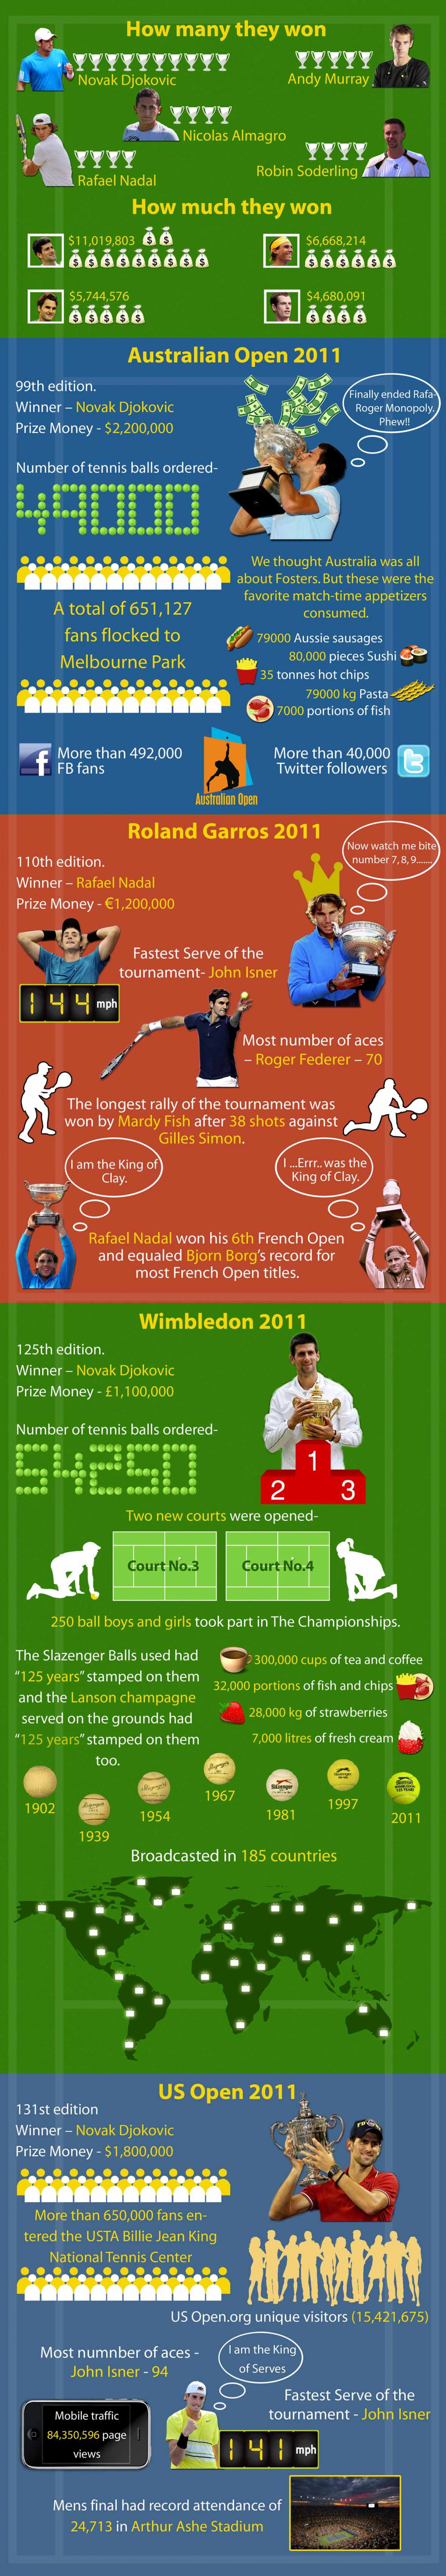 5. Grand Slam Illustrated